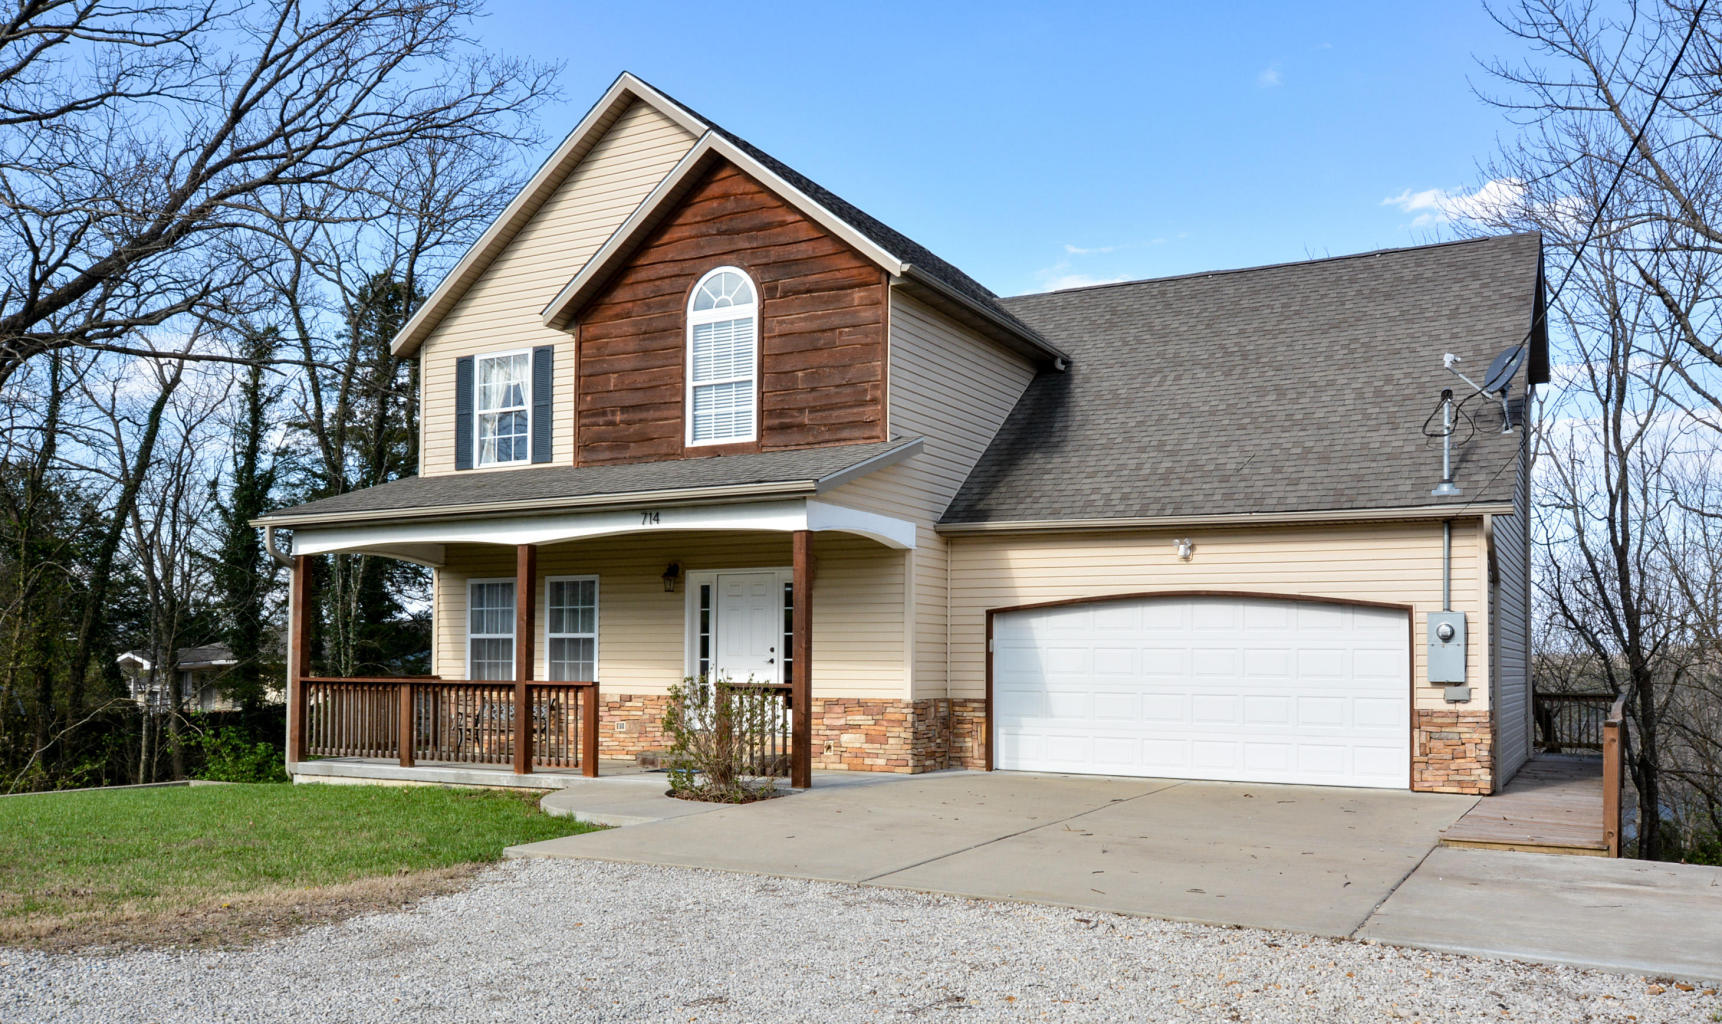 Branson Area Home Front